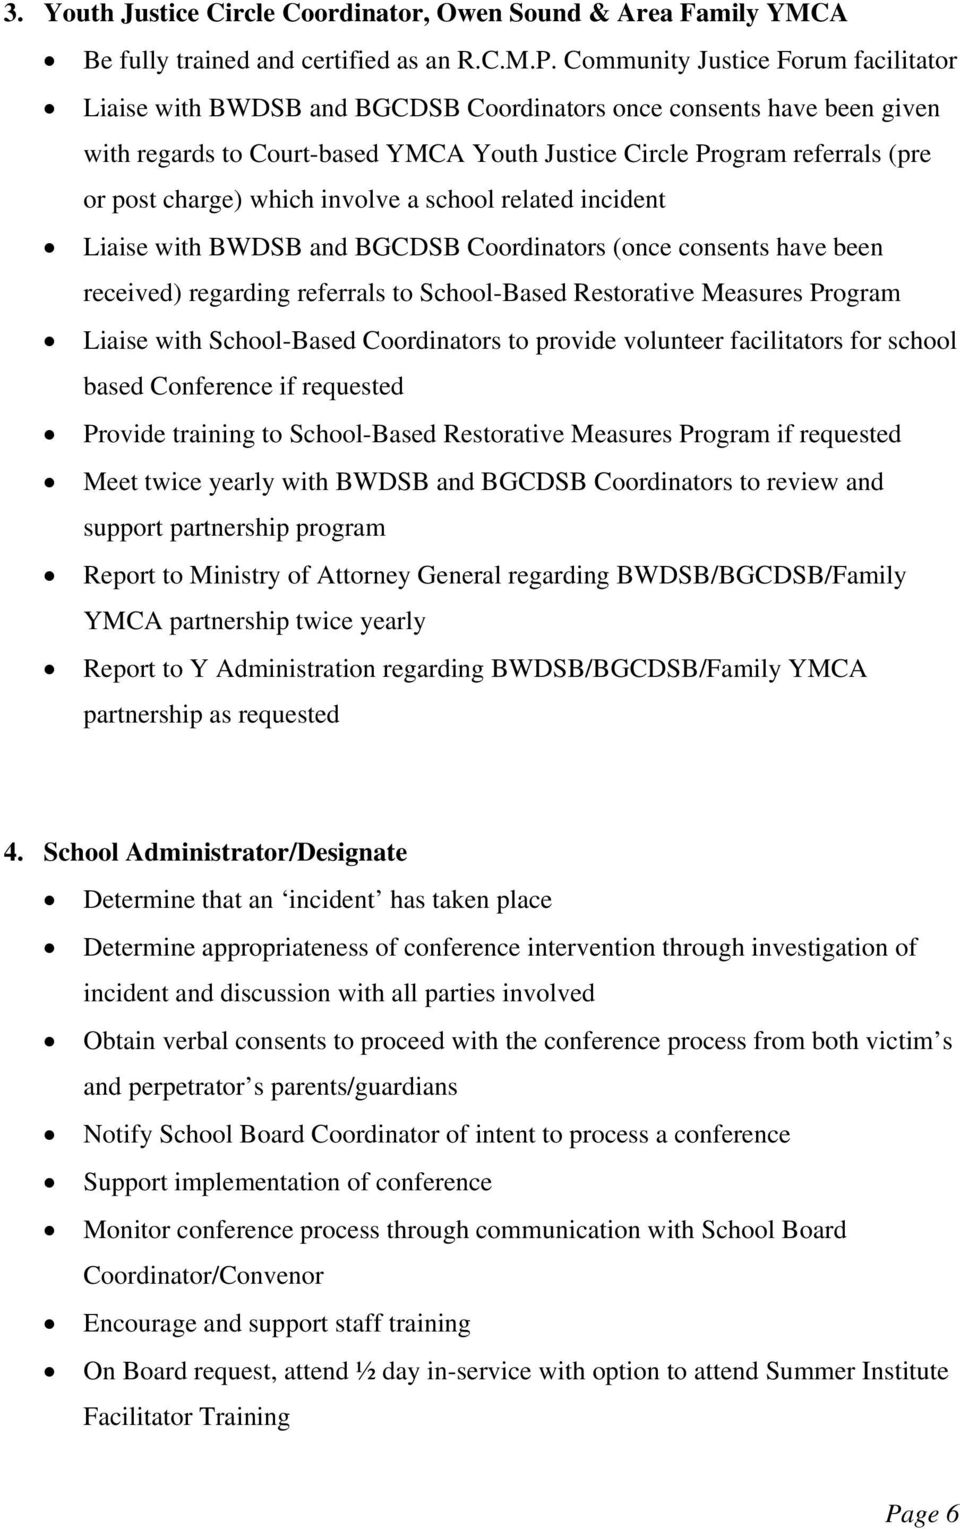 charge) which involve a school related incident Liaise with BWDSB and BGCDSB Coordinators (once consents have been received) regarding referrals to School-Based Restorative Measures Program Liaise